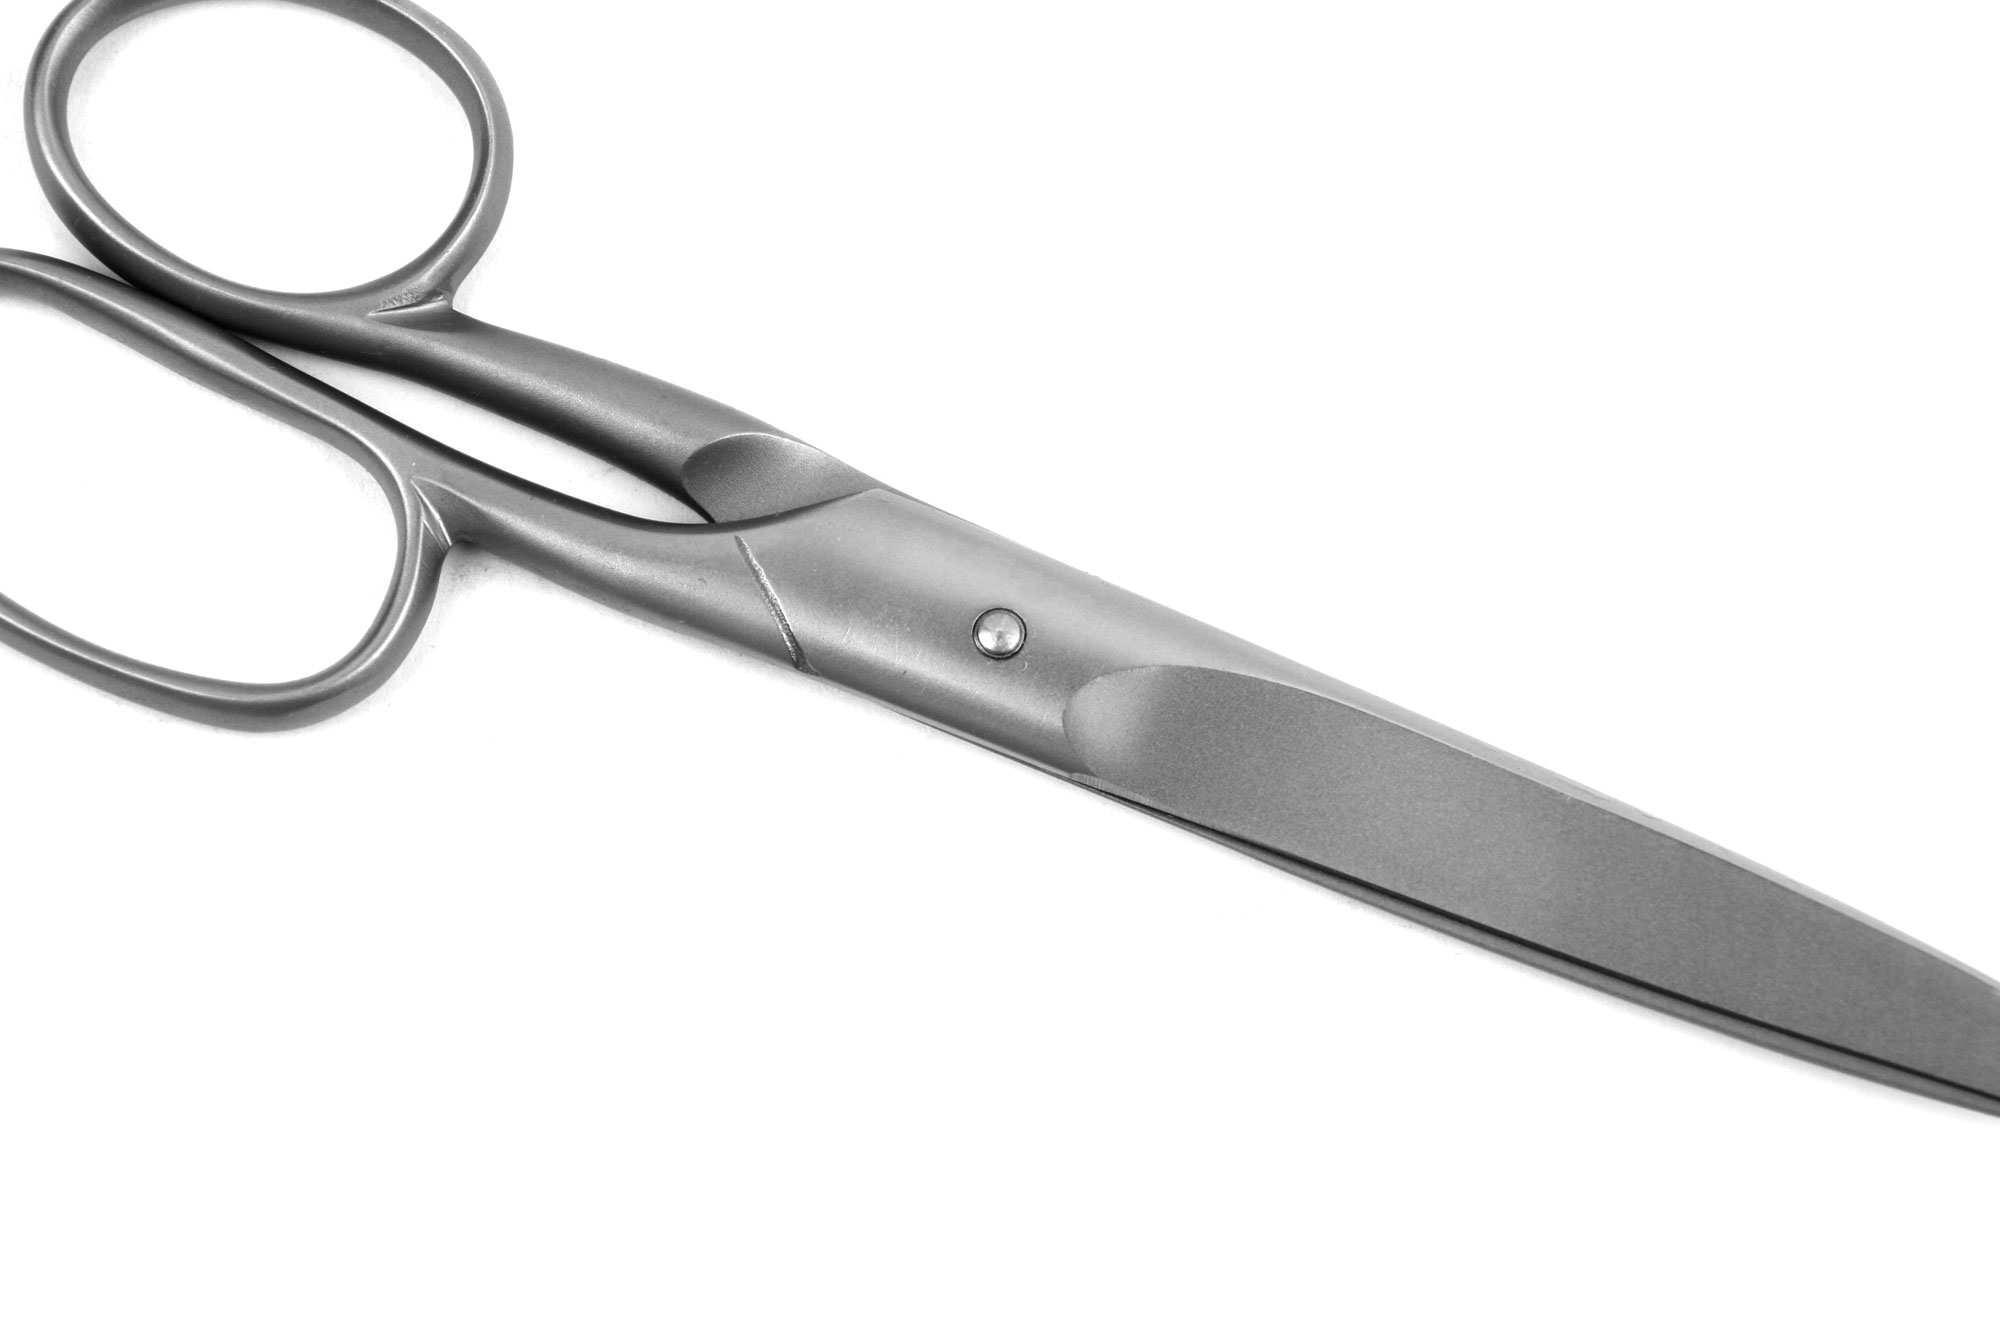 Dovo Stainless Steel Household Scissors 7quot Cutlery And More